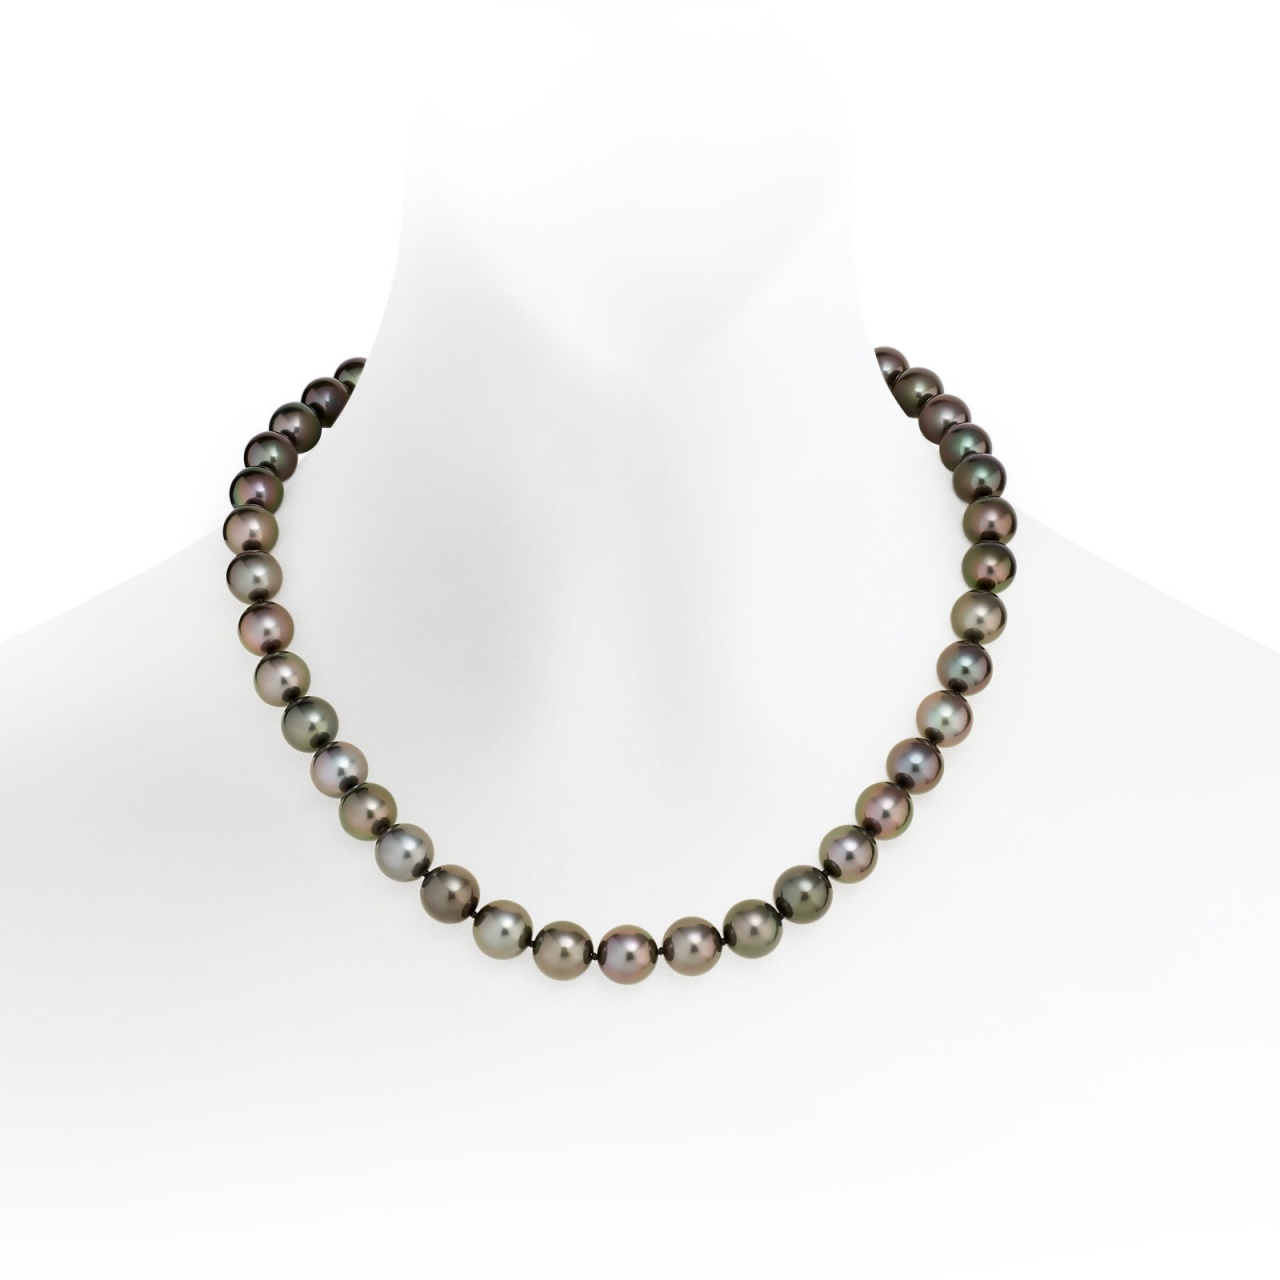 Black Tahitian Pearl Necklace with White Gold-TNBRWG1019-1